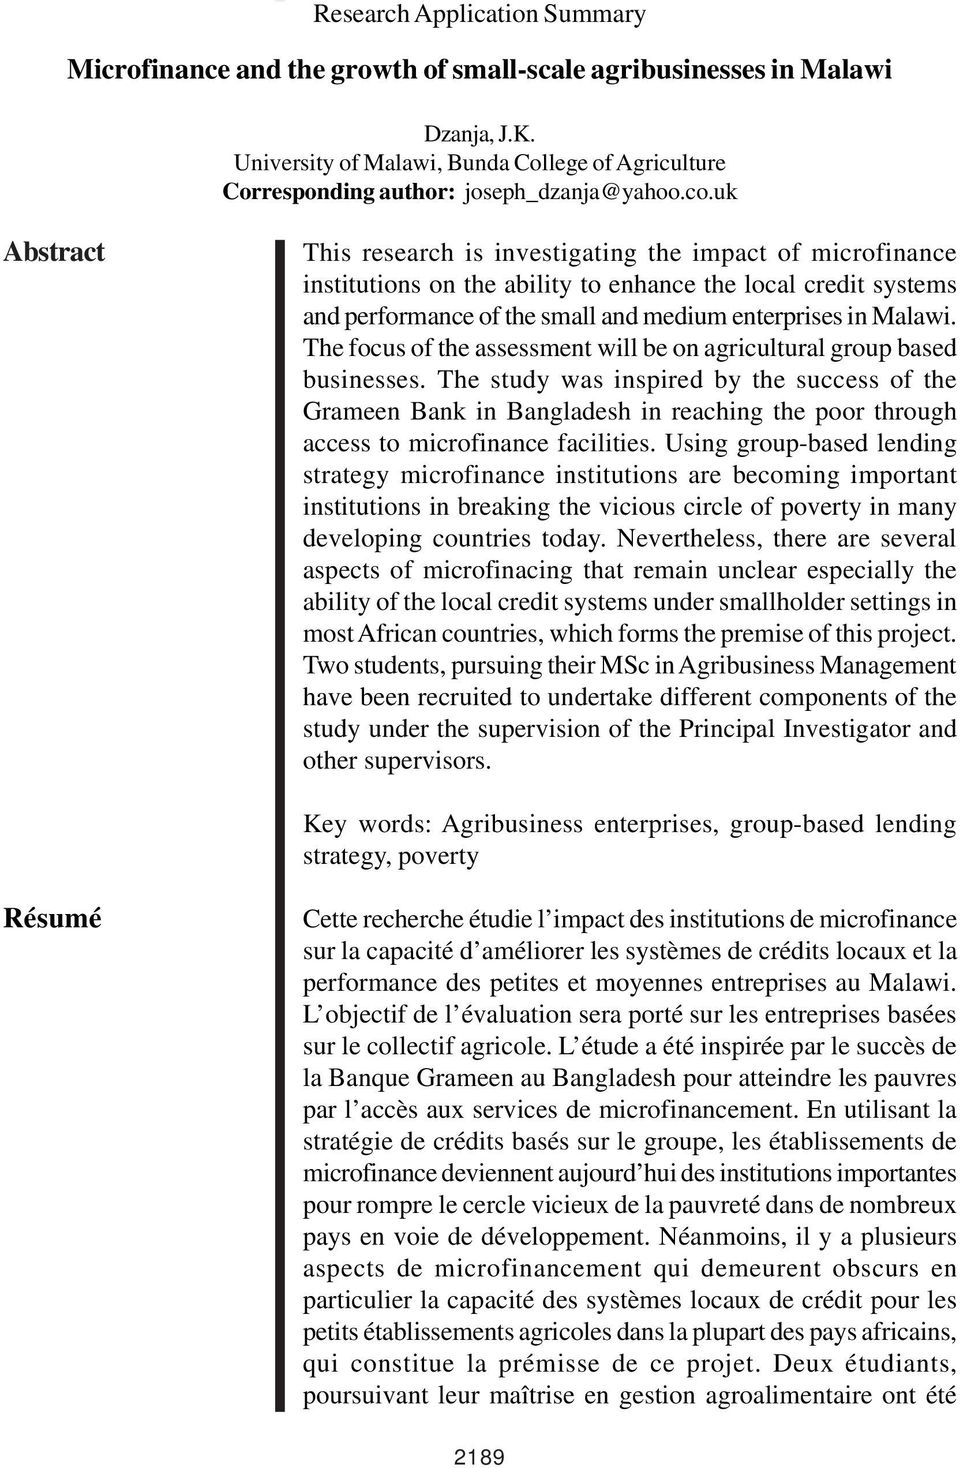 uk Abstract This research is investigating the impact of microfinance institutions on the ability to enhance the local credit systems and performance of the small and medium enterprises in Malawi.